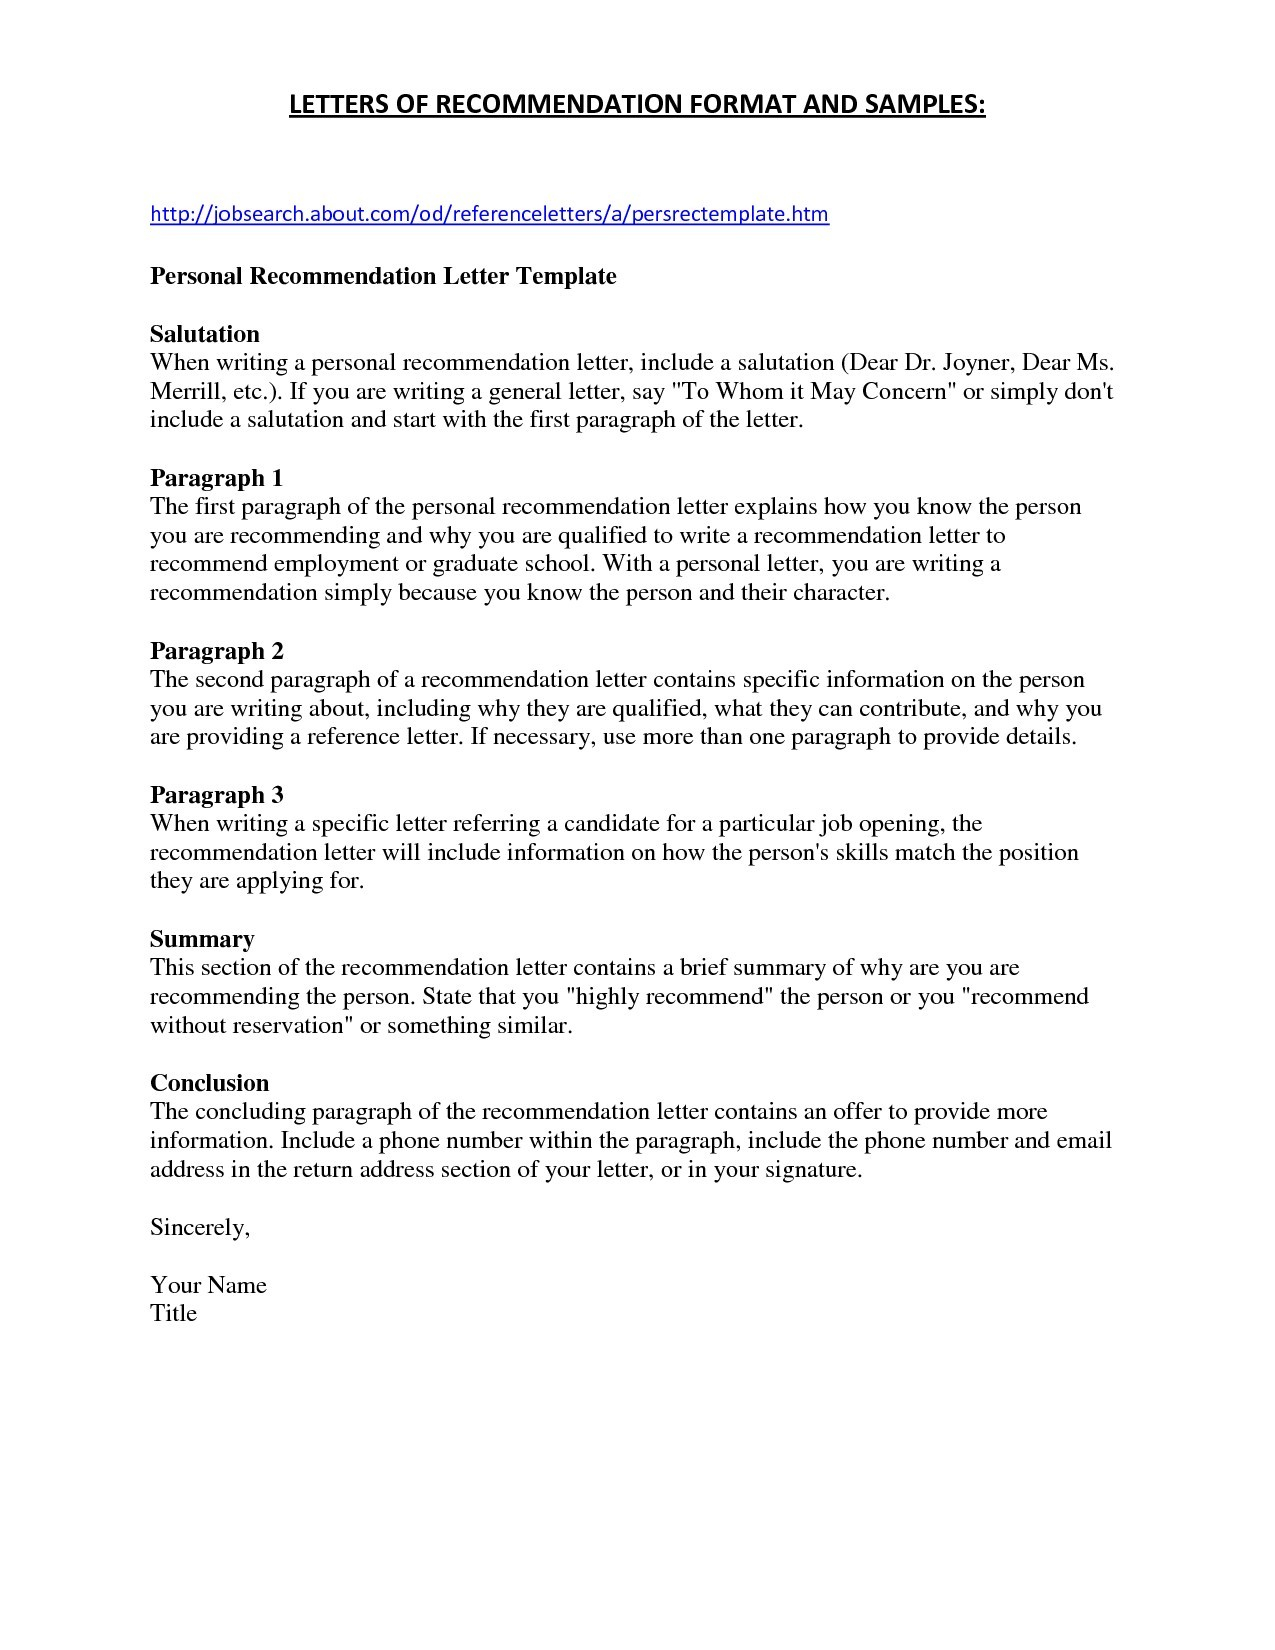 Leadership Letter Of Recommendation Template - Letter Re Mendation for Nurse Leader Best Nursing Letter Re